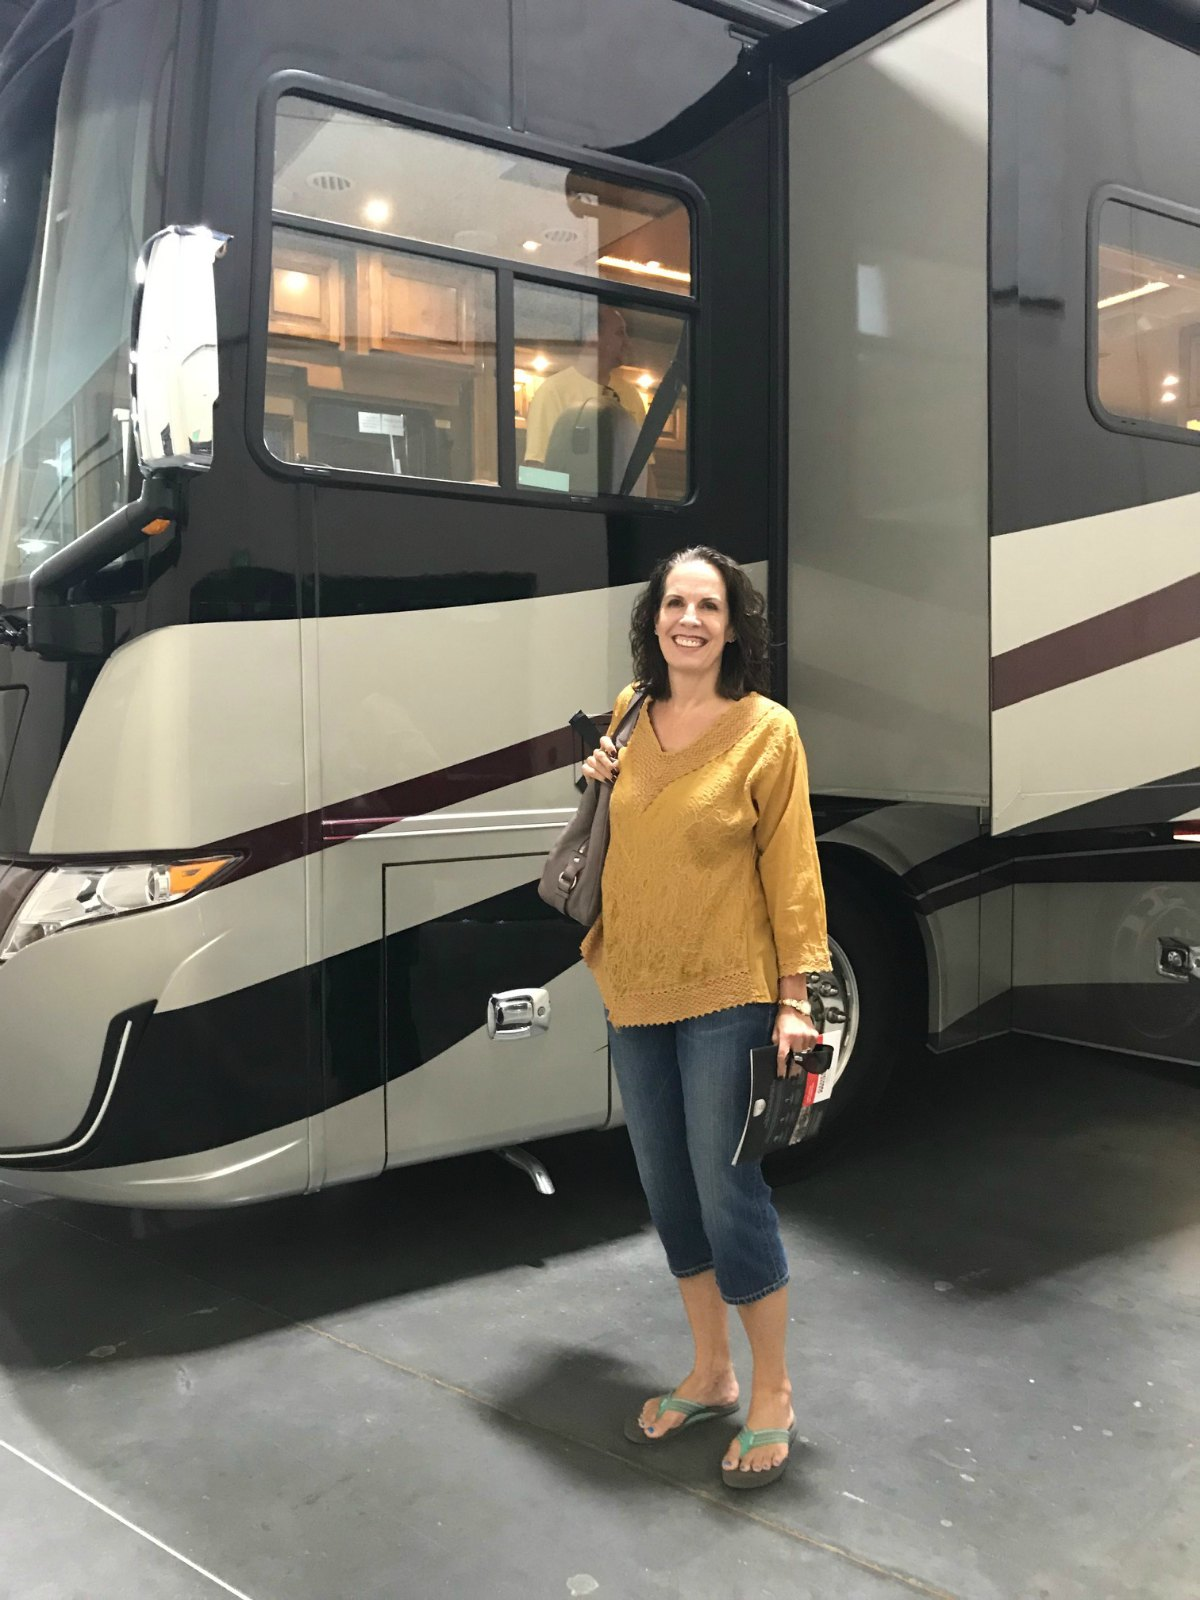 Woman in front of a motorhome